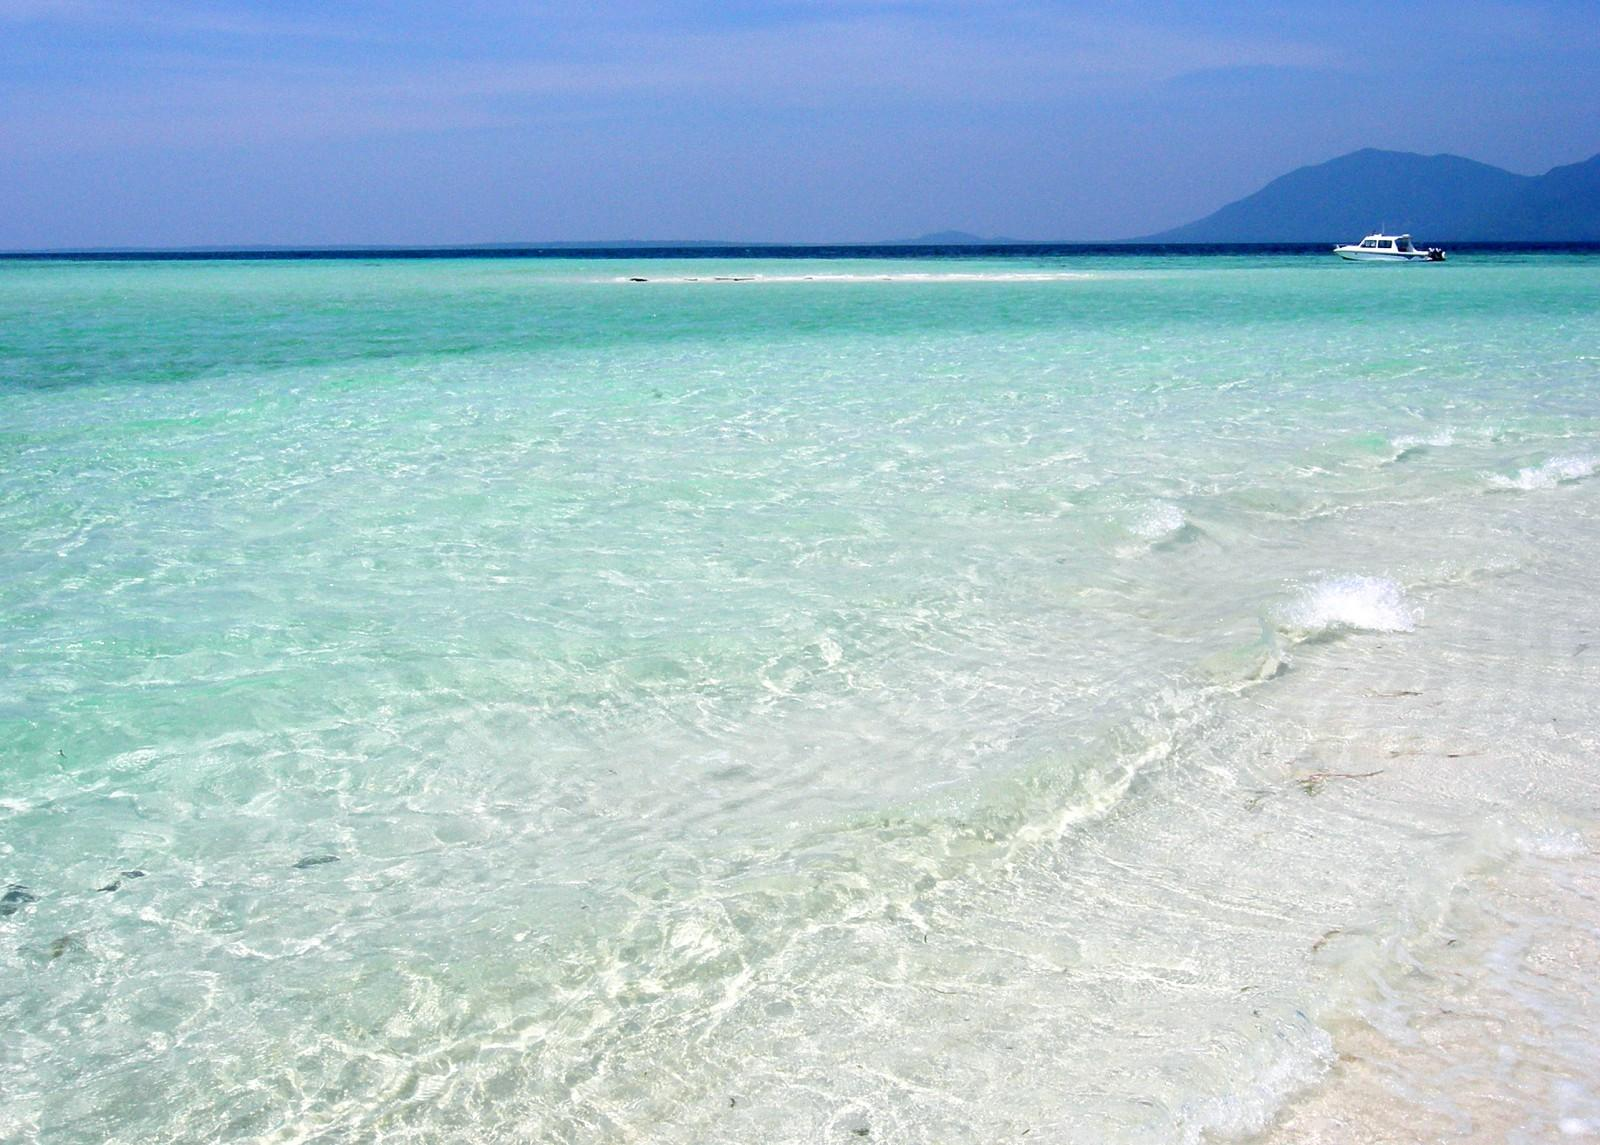 Crystal clear waters at Kura Kura, Indonesia